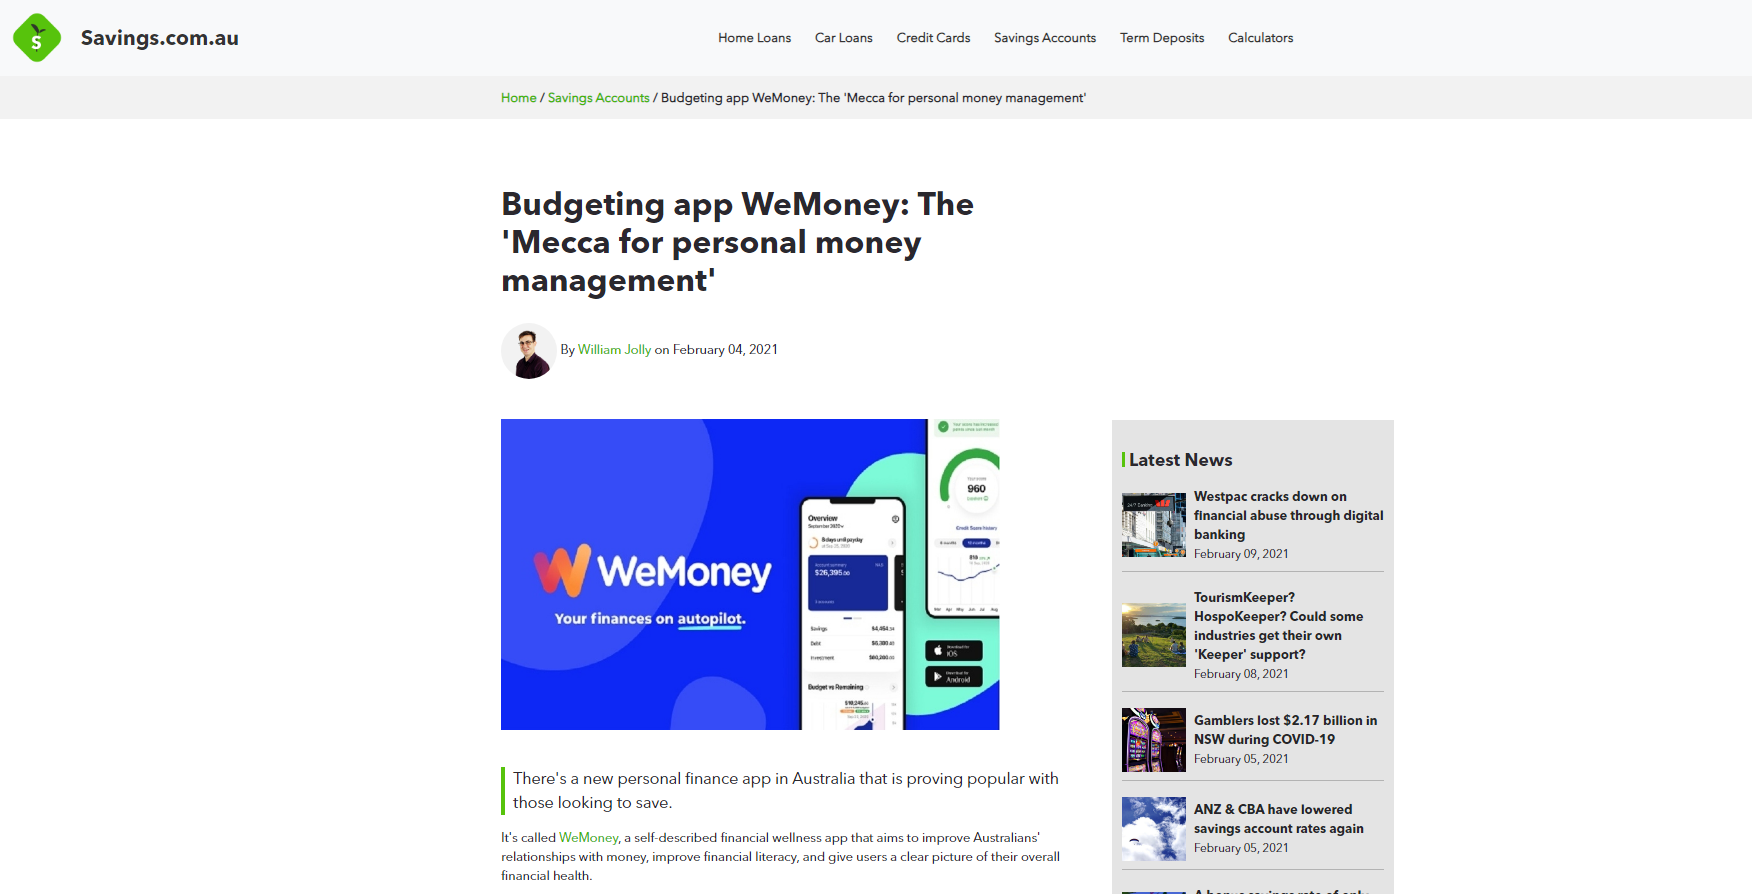 screenshot of the savings.com.au article featuring WeMoney